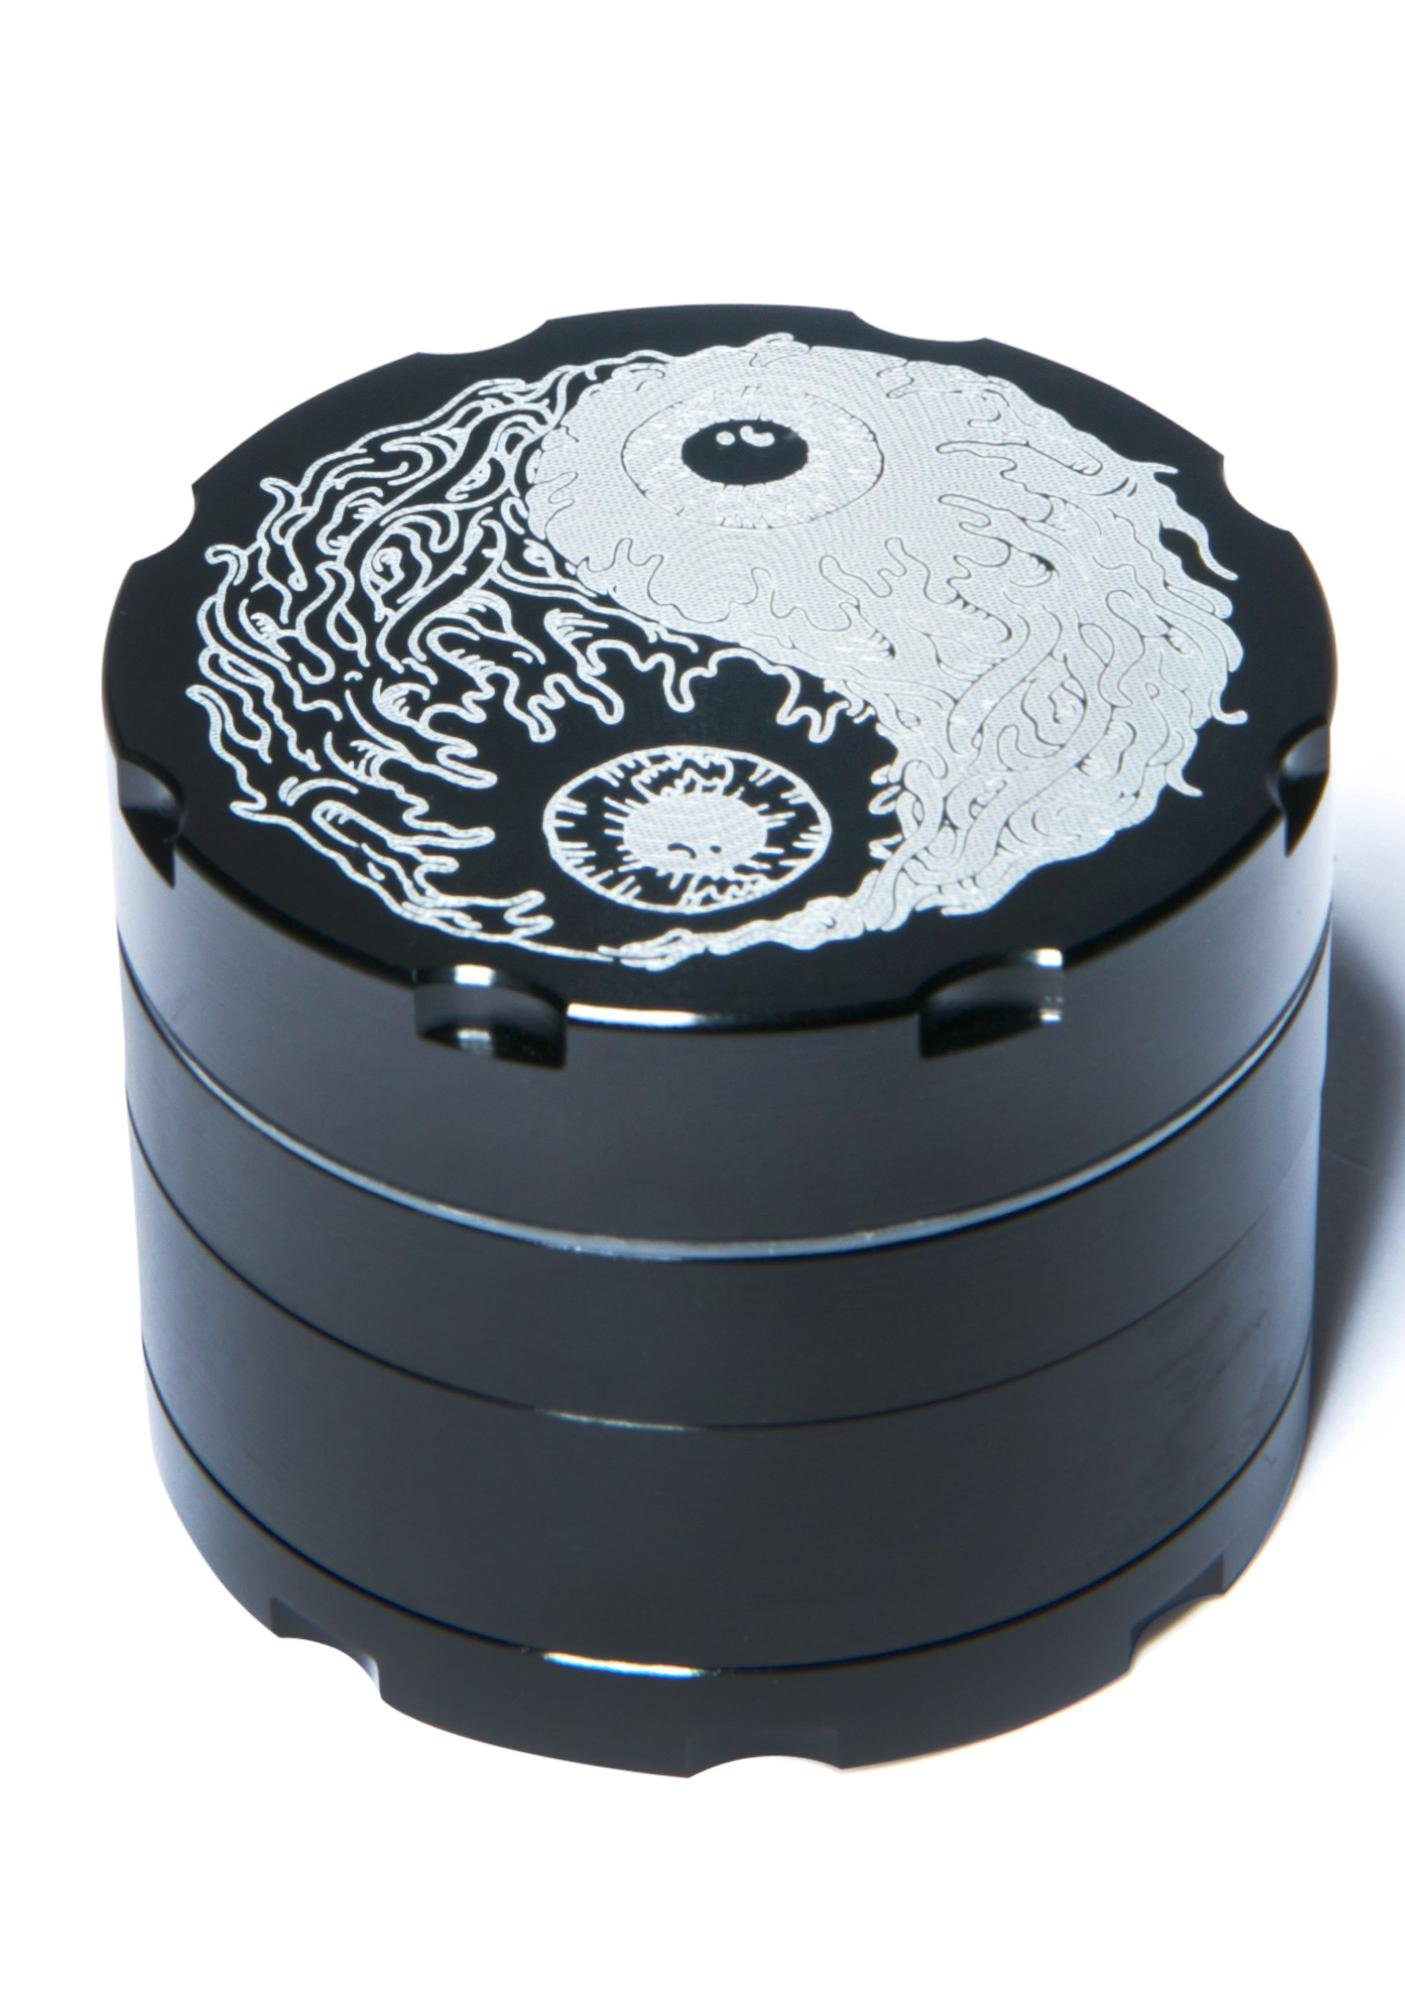 Mishka Balanced Keep Watch Grinder